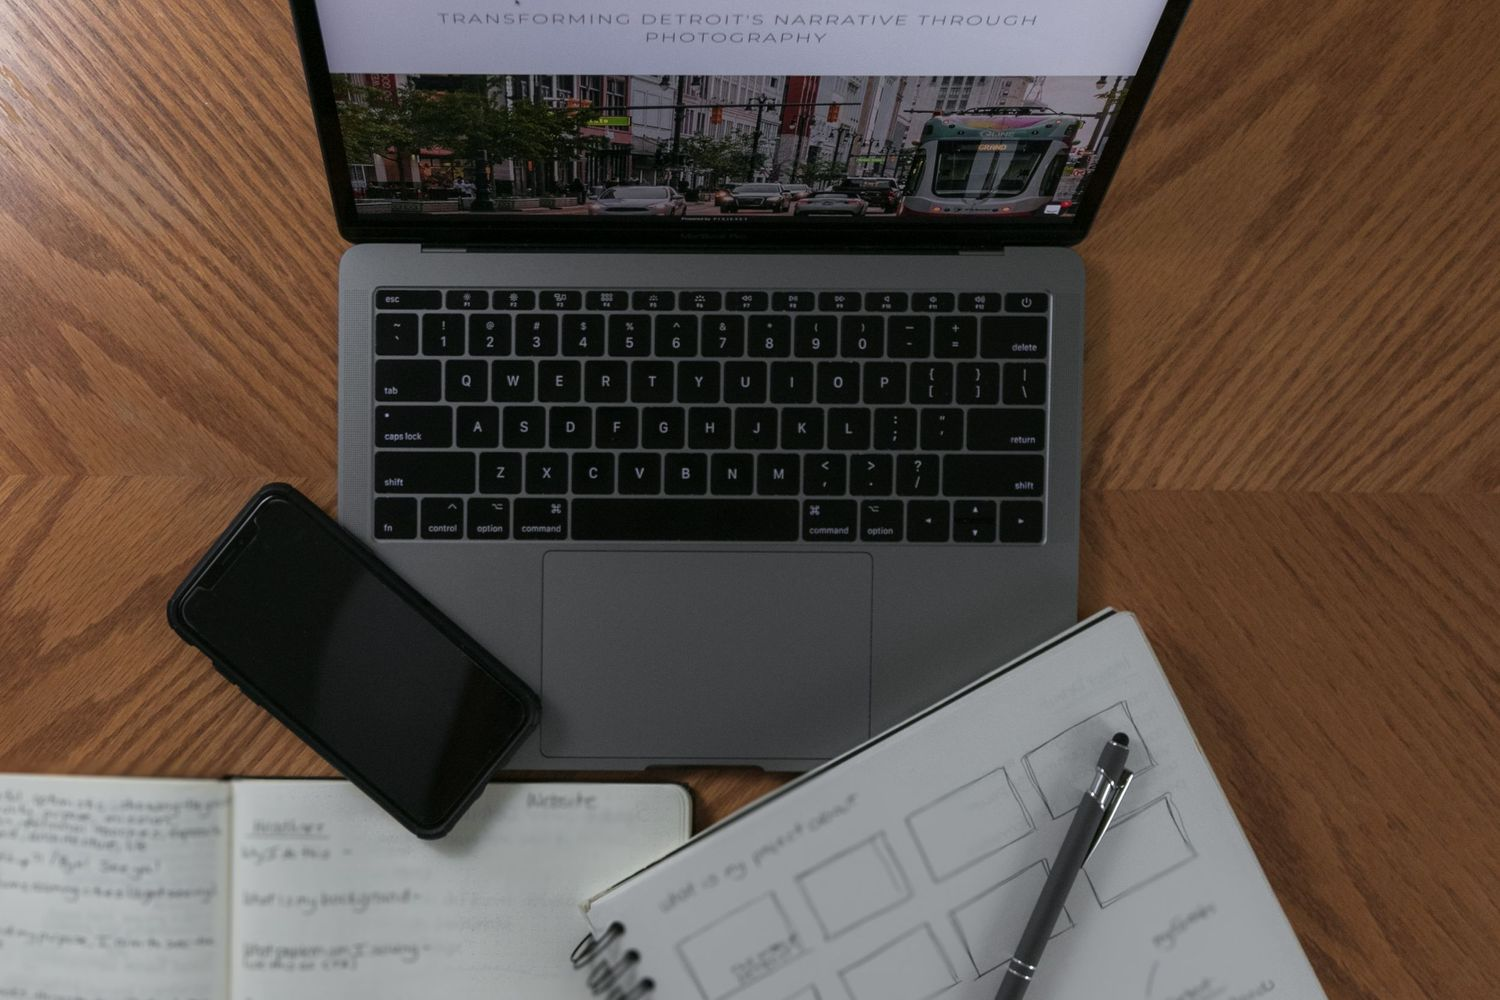 Flat lay image of open laptop with notebook and cell phone